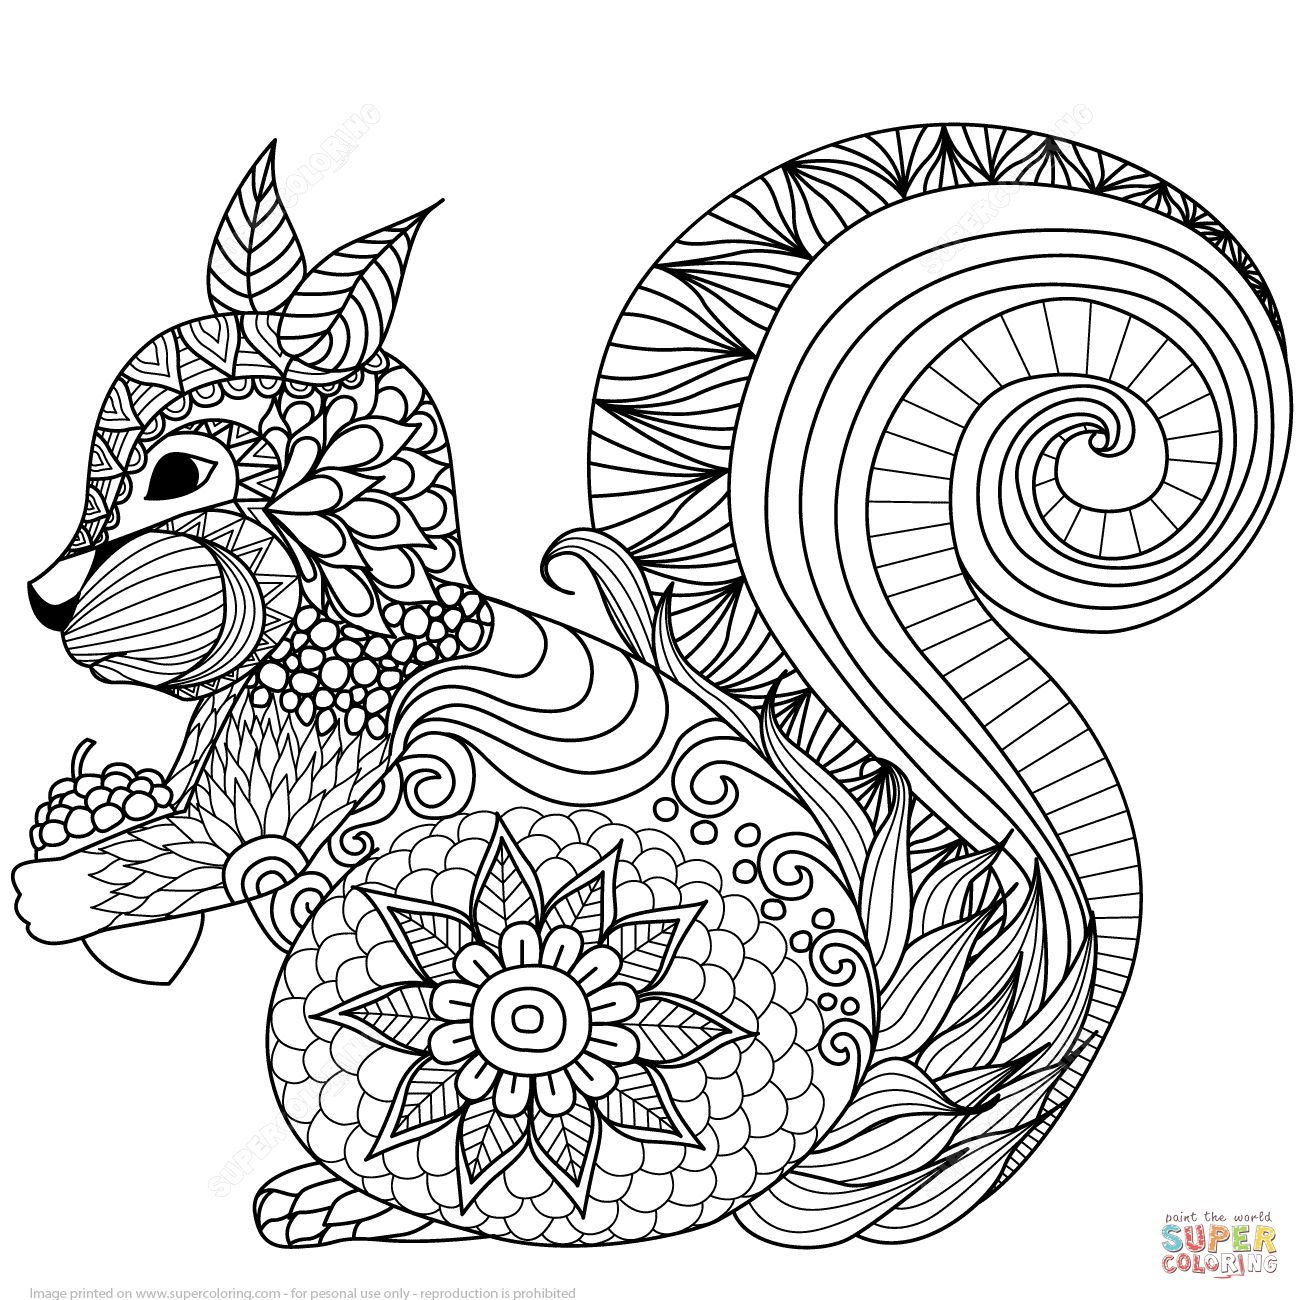 25 Inspiration Image Of Animal Mandala Coloring Pages Entitlementtrap Com Squirrel Coloring Page Mandala Coloring Pages Animal Coloring Books